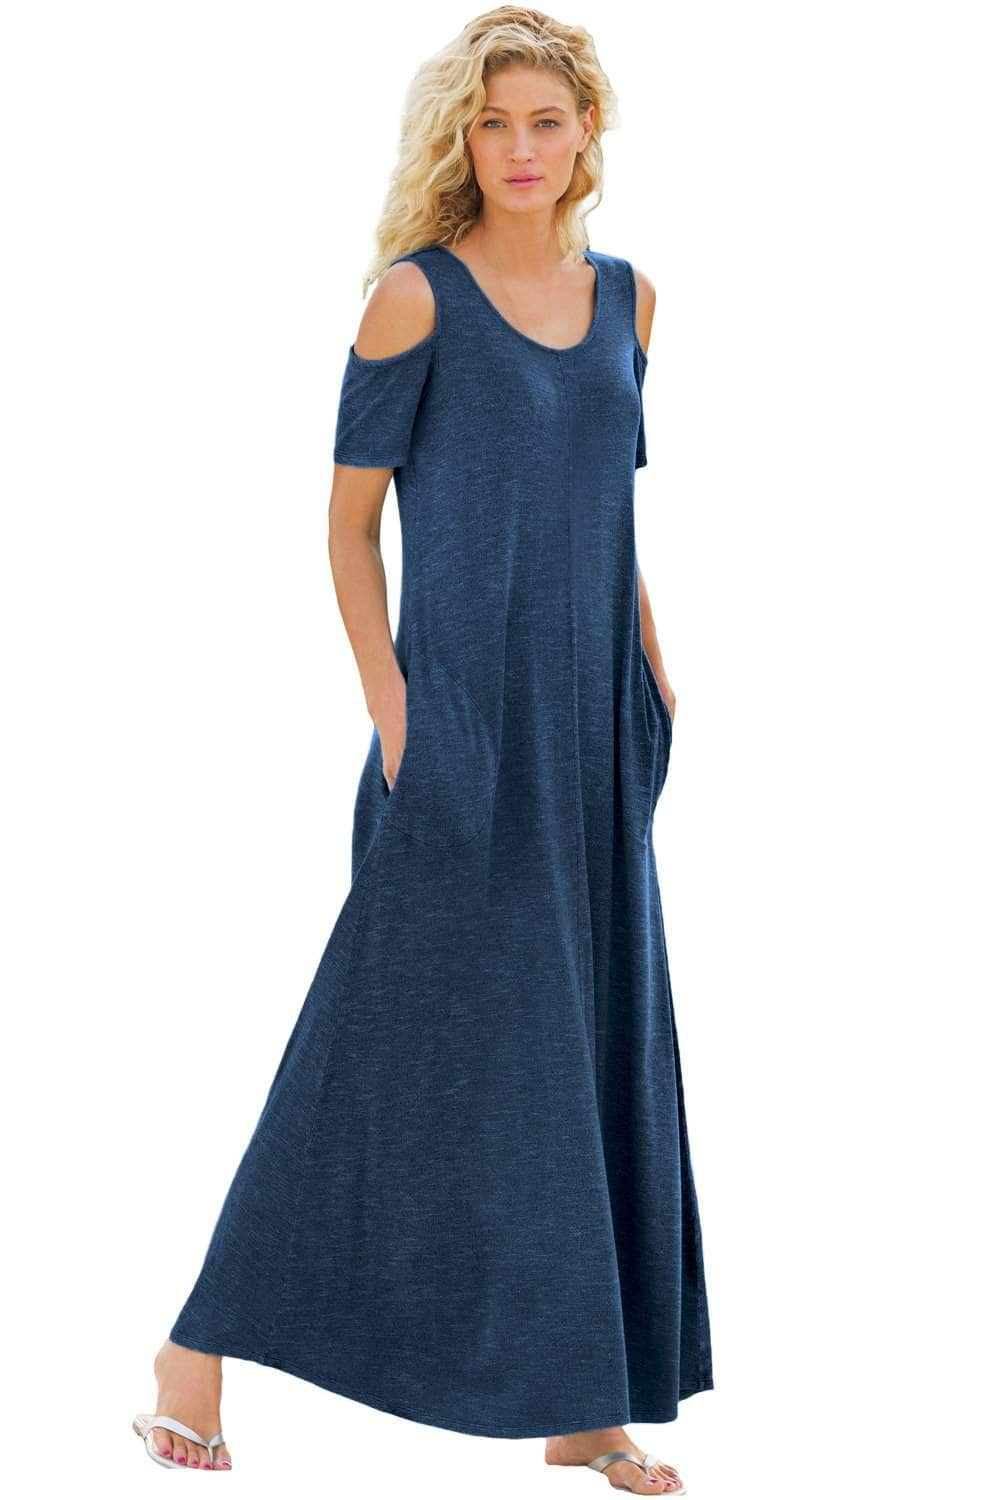 8c18bfd296b Indigo Cold Shoulder Pocket Style Maxi Dress by Victory Roze